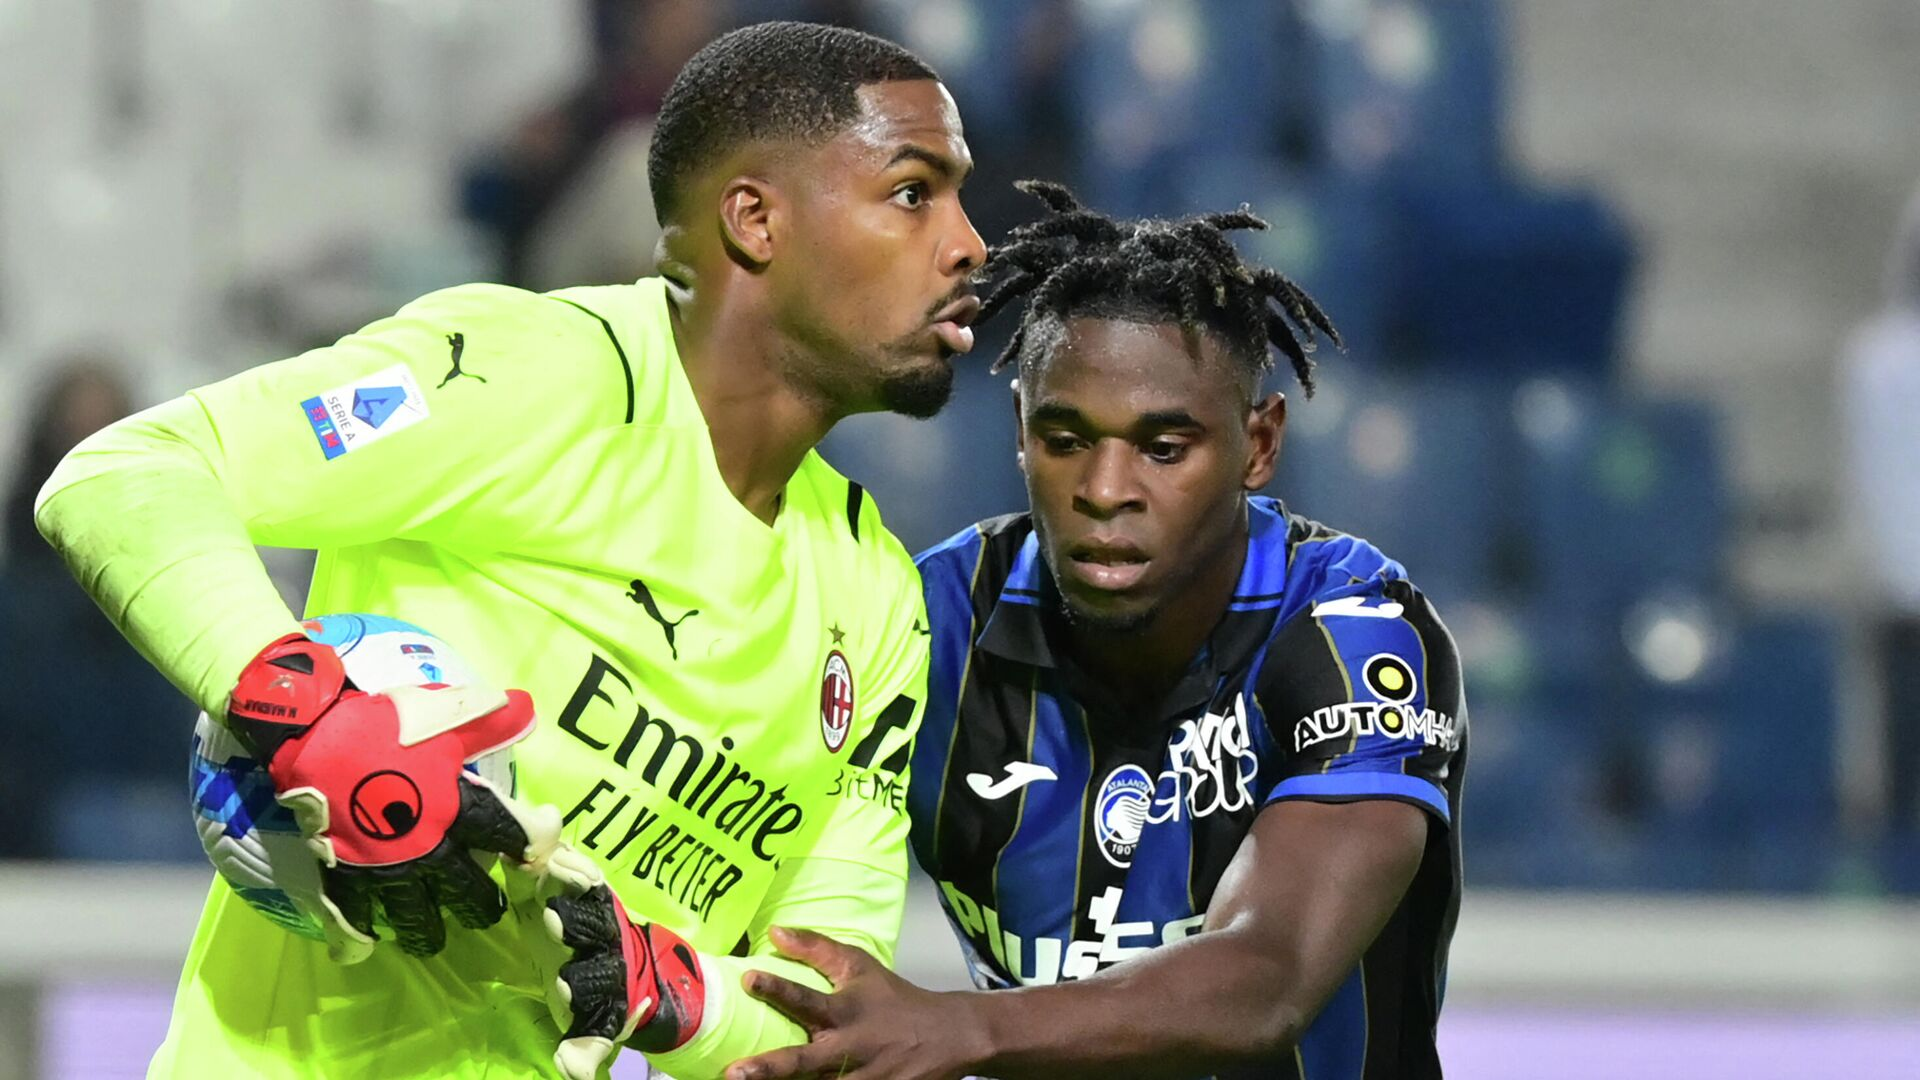 AC Milan's French goalkeeper Mike Maignan holds the ball back from Atalanta's Colombian forward Duvan Zapata during their Italian Serie A football match Atalanta Bergamo versus AC Milan at the Gewiss Stadium (Stadio di Bergamo) in the northern city of Bergamo on October 3, 2021. (Photo by MIGUEL MEDINA / AFP) - РИА Новости, 1920, 13.10.2021